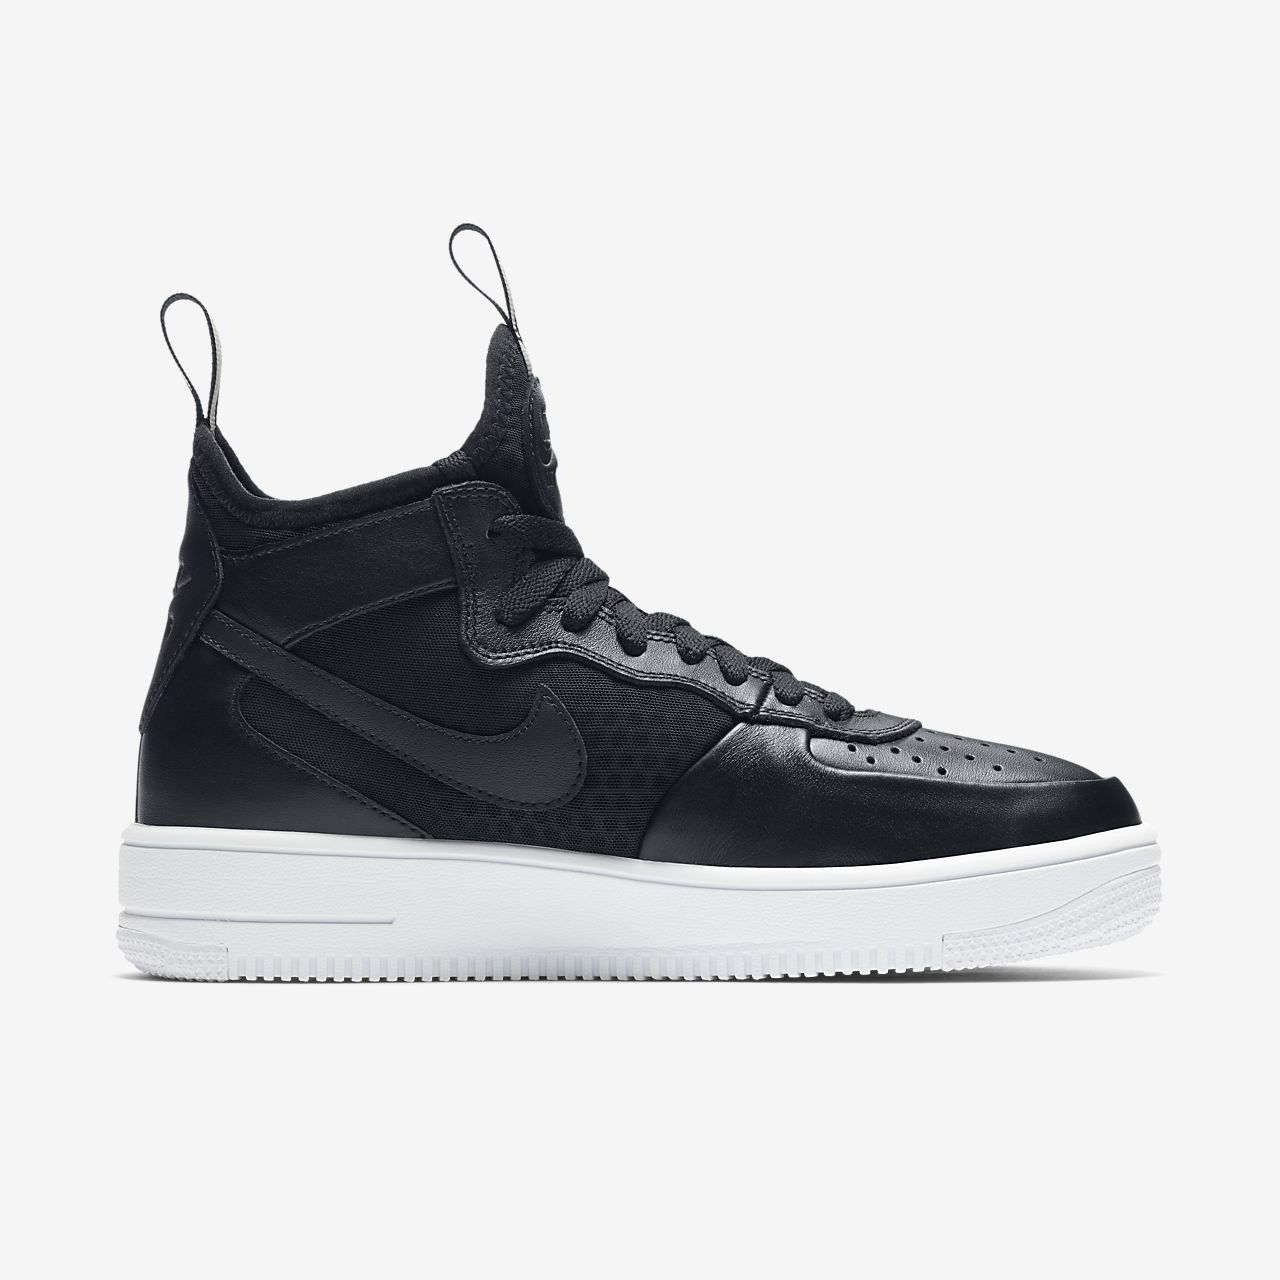 ... Nike Air Force 1 UltraForce Mid - sko til kvinder